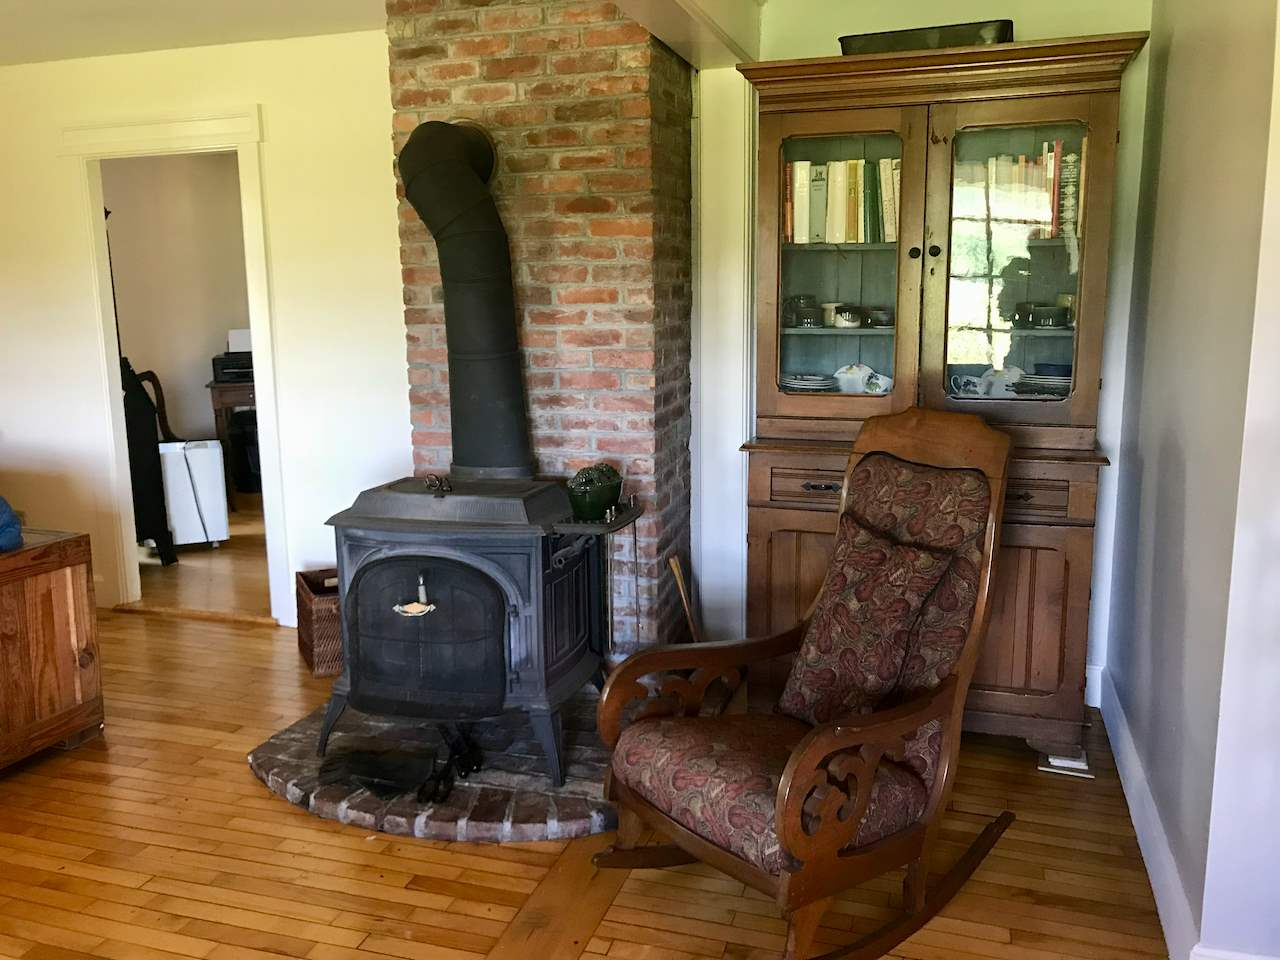 Wood stove for warmth and ambience